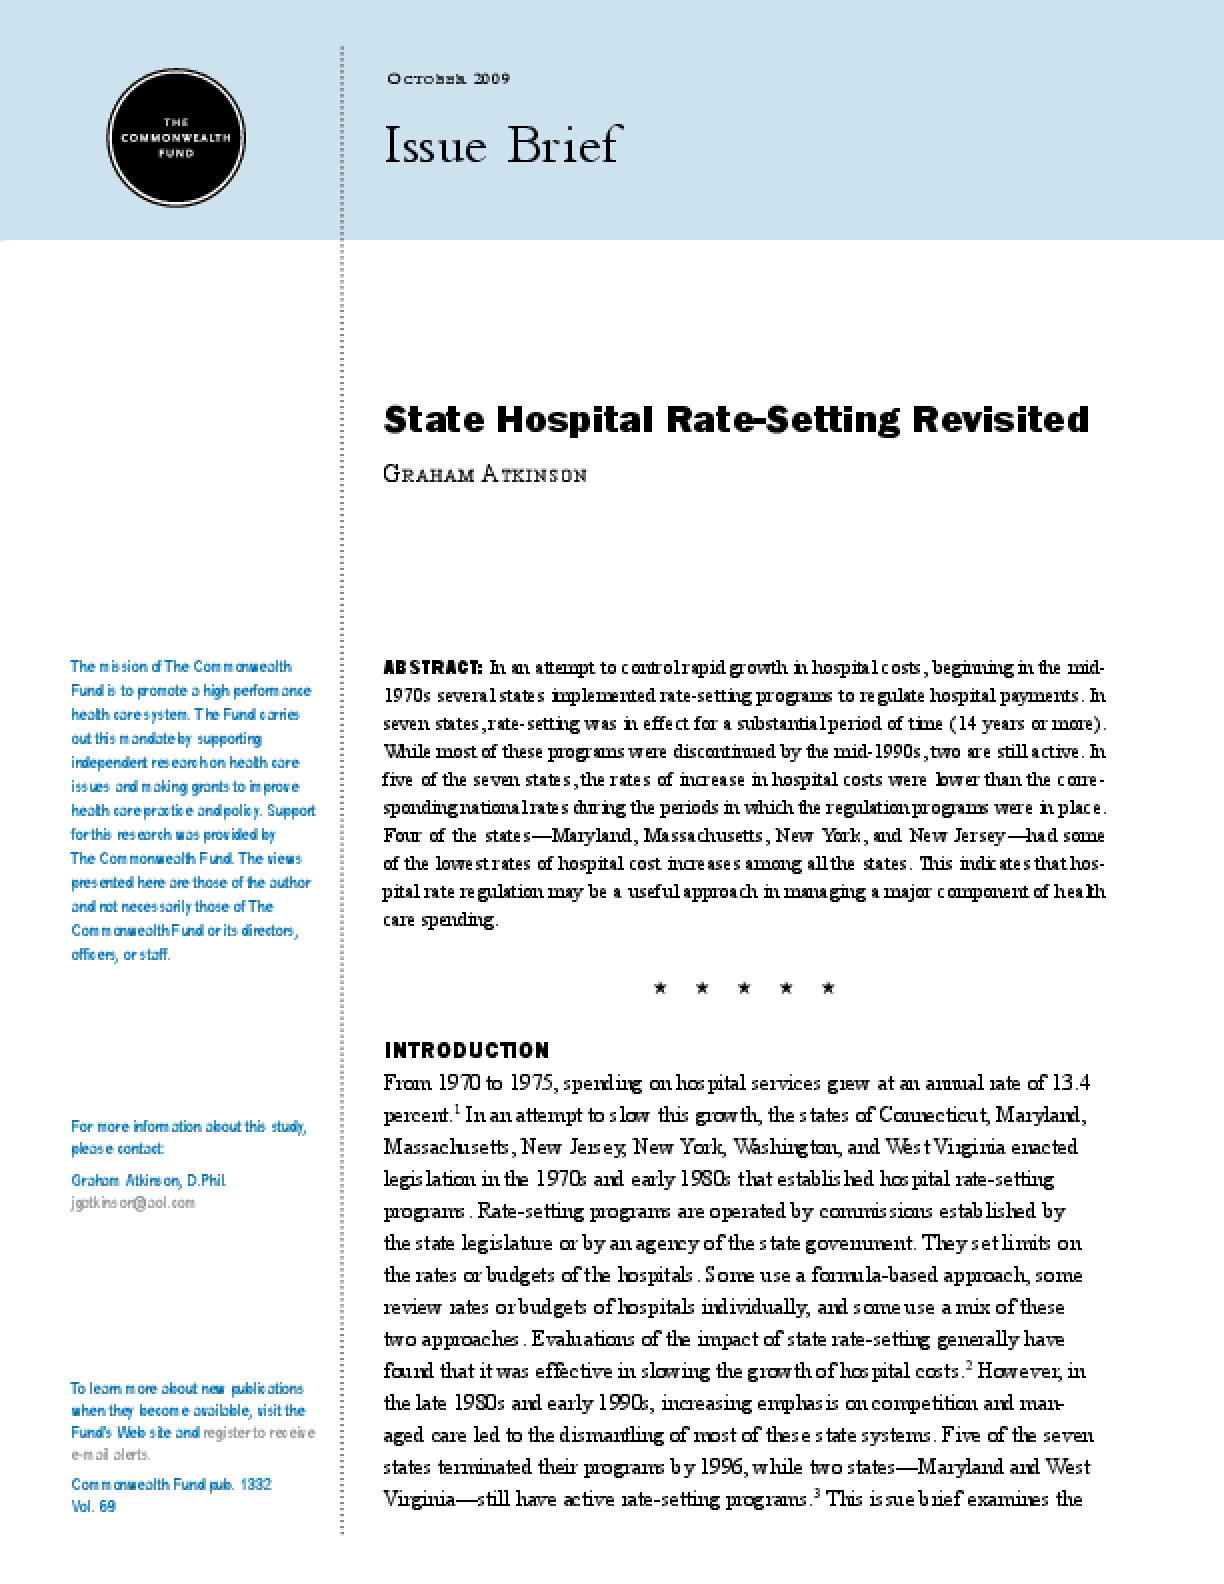 State Hospital Rate-Setting Revisited